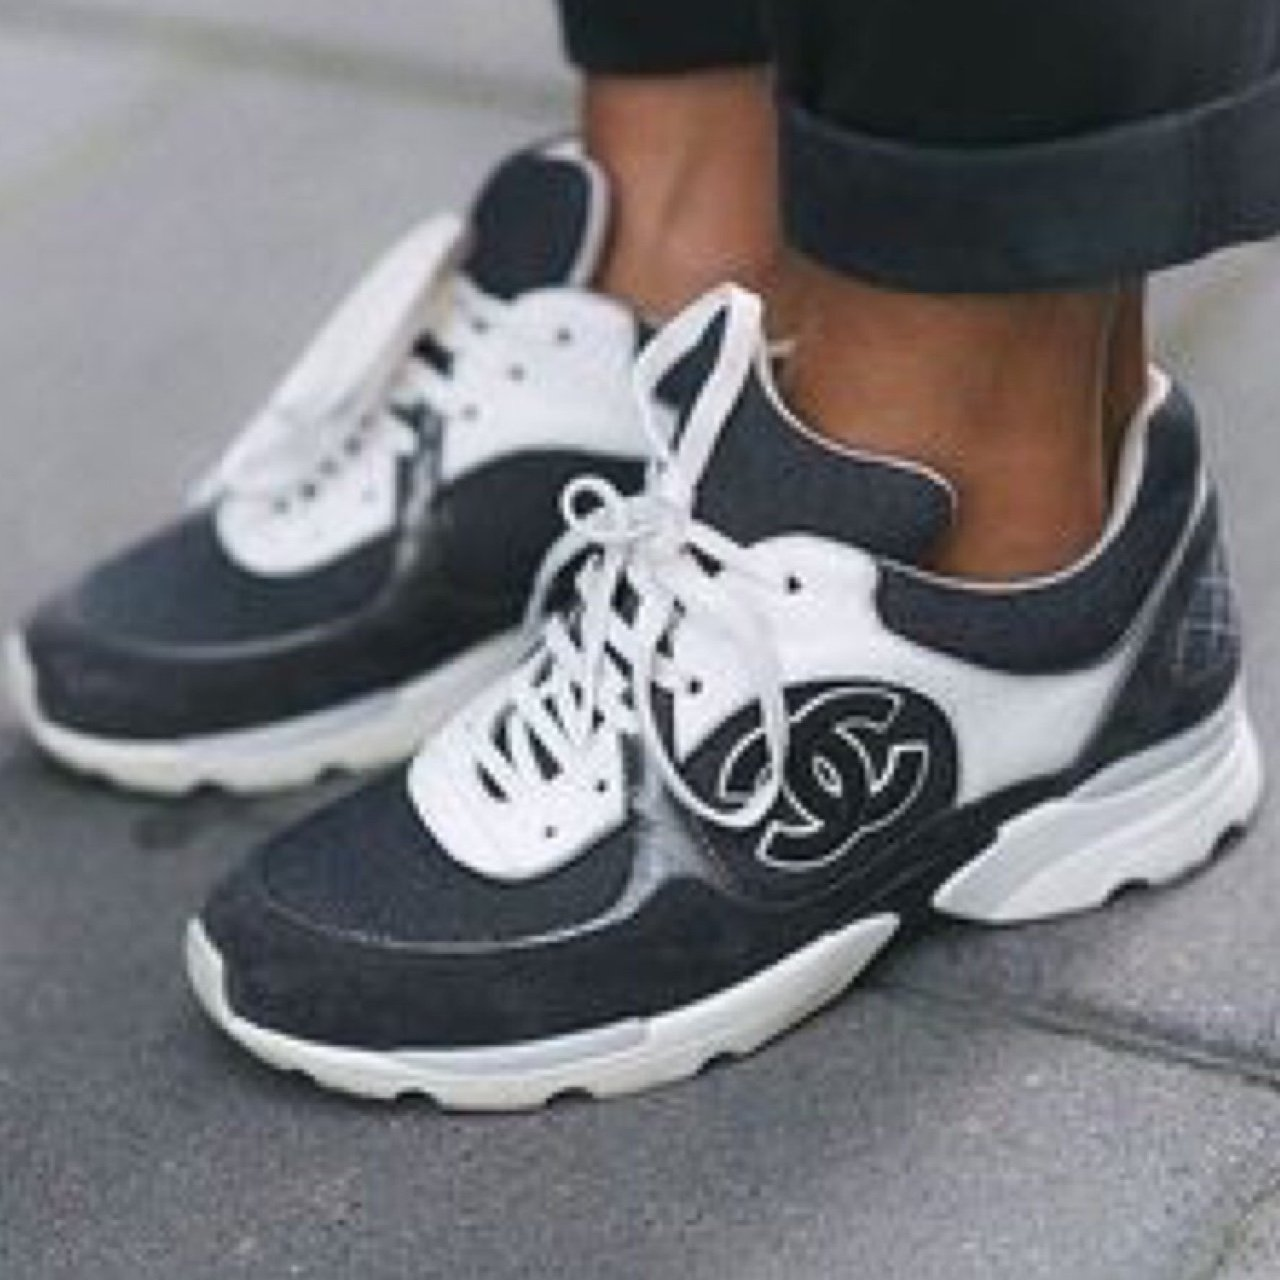 f0968652fee WTB (MEANS WANT TO BUY) - in search of more Chanel sneakers - Depop